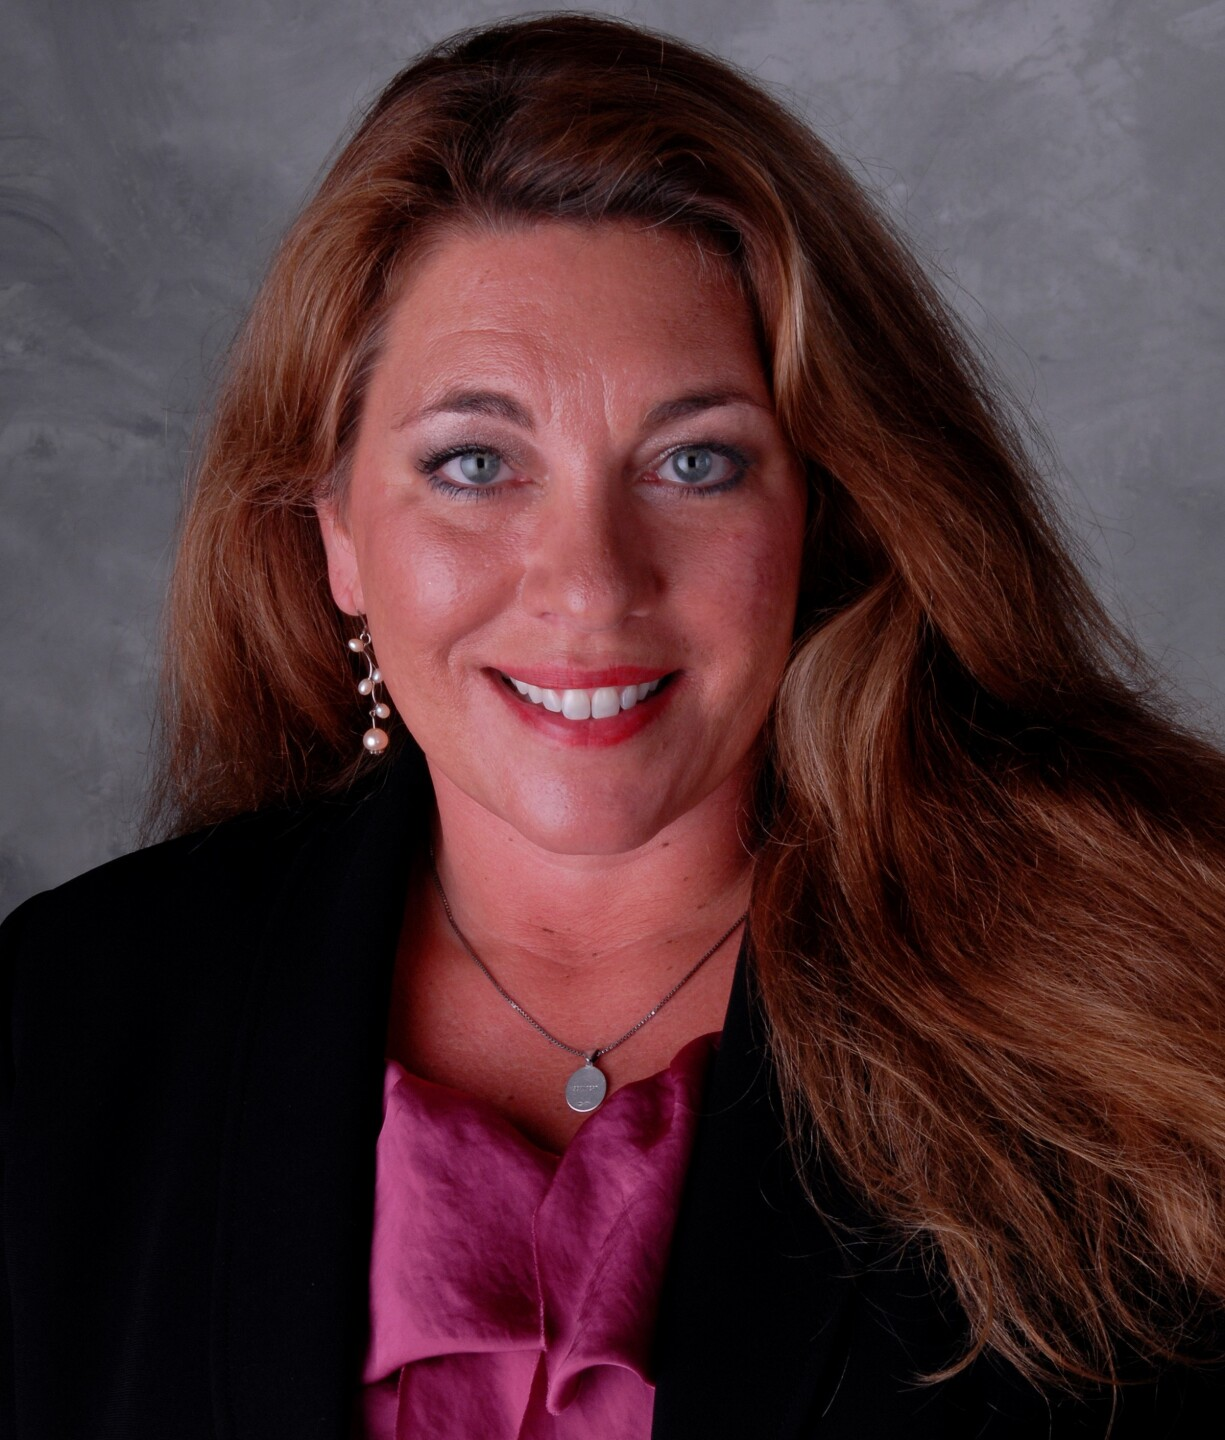 Jeanne Golliher is smiling in this photo. She has blue eyes, long, wavy brown hair and is wearing a mauve blouse and black jacket.